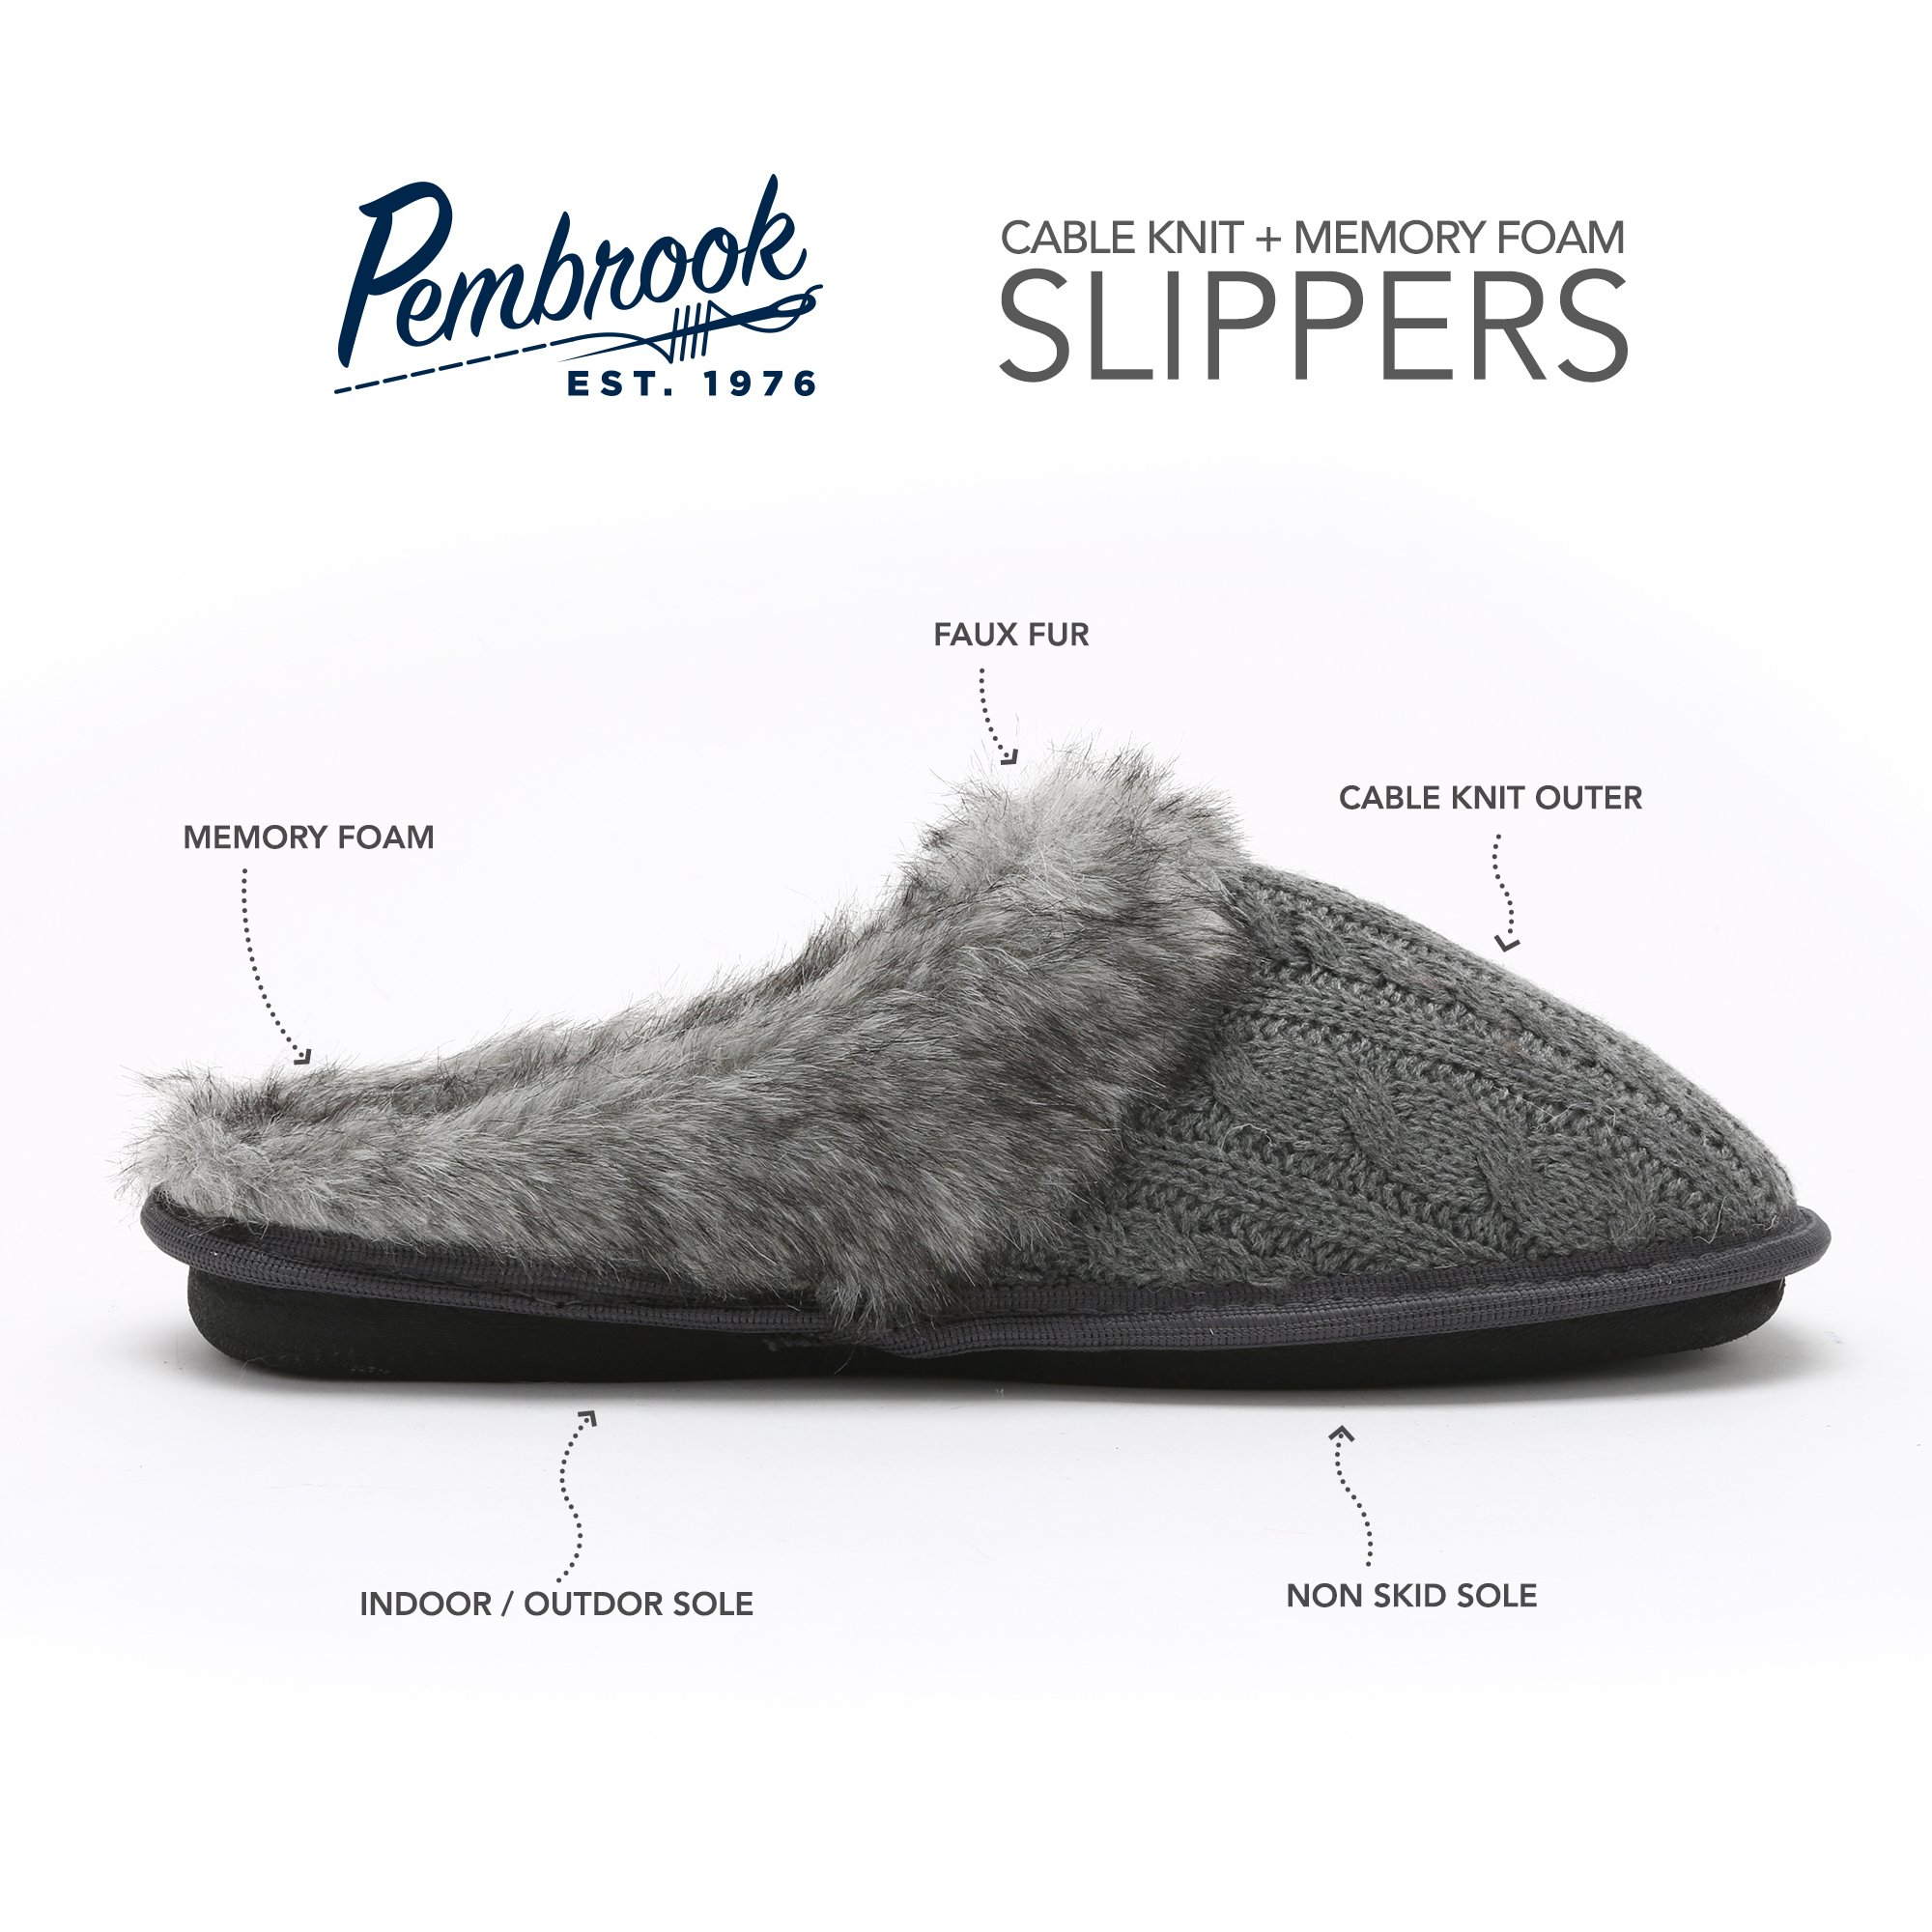 Pembrook Ladies Faux Fur + Cable Knit Slippers – Gray, Large - Comfortable Memory Foam Indoor and Outdoor Non-Skid Sole - Great Plush Slip on House Shoes for adults, women, girls by Pembrook (Image #3)